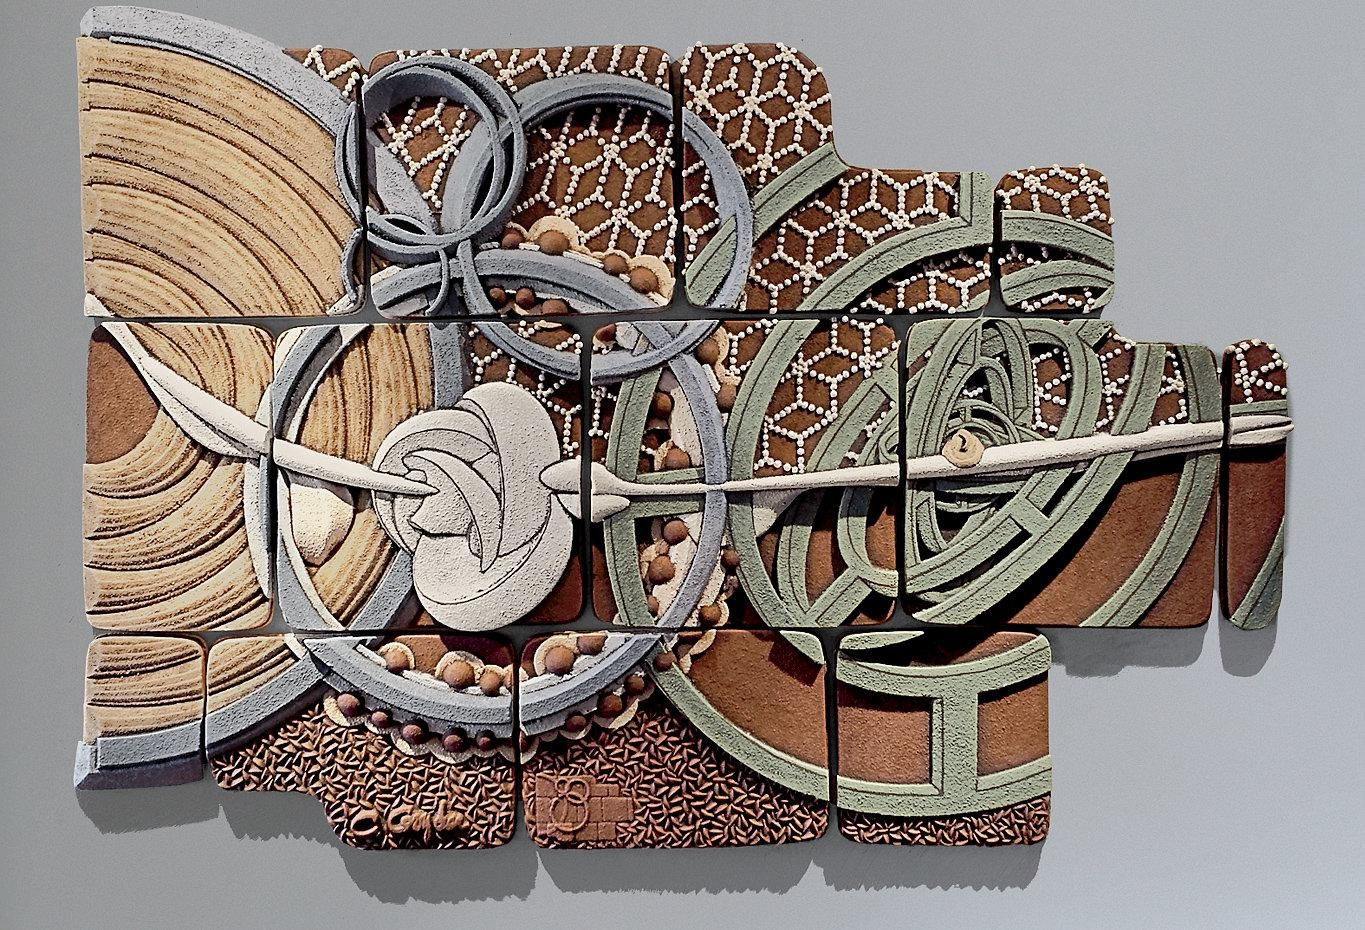 Unique Ceramic Wall Art And Sculpture | Artful Home Within Large Ceramic Wall Art (View 5 of 20)